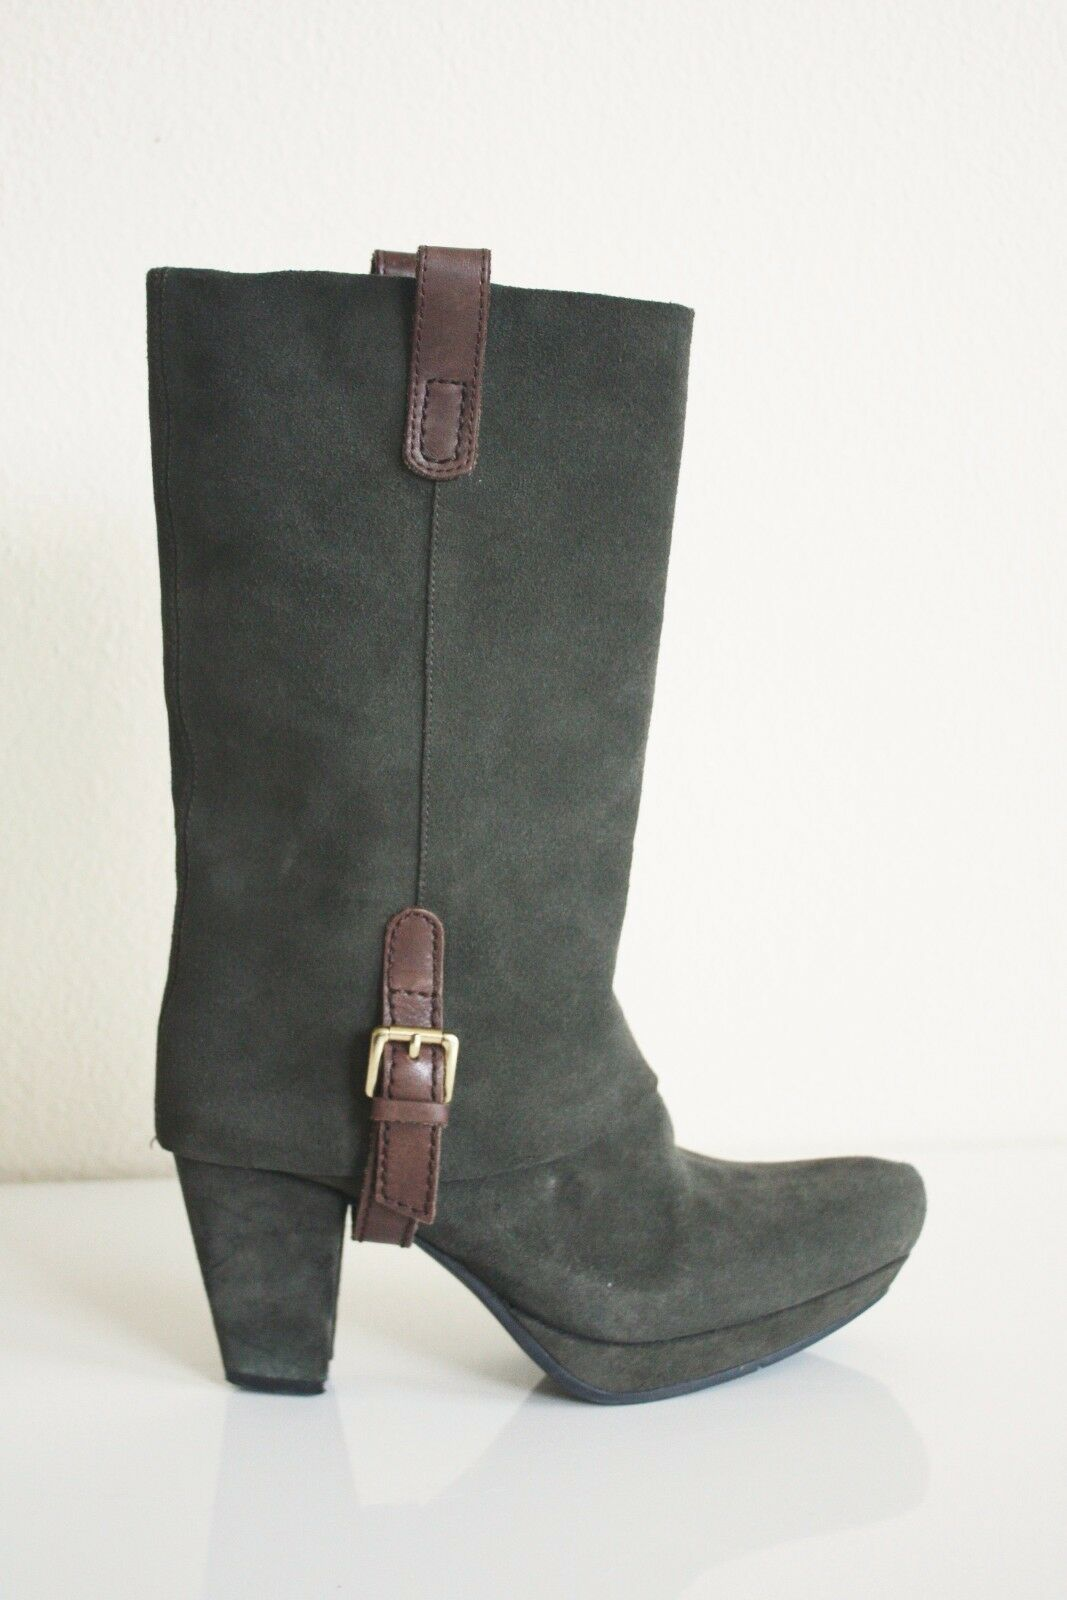 EARTHIES LINTZ MID-CALF BOOTS 8 Green Suede  Fold Over Platform Cowboy shoes